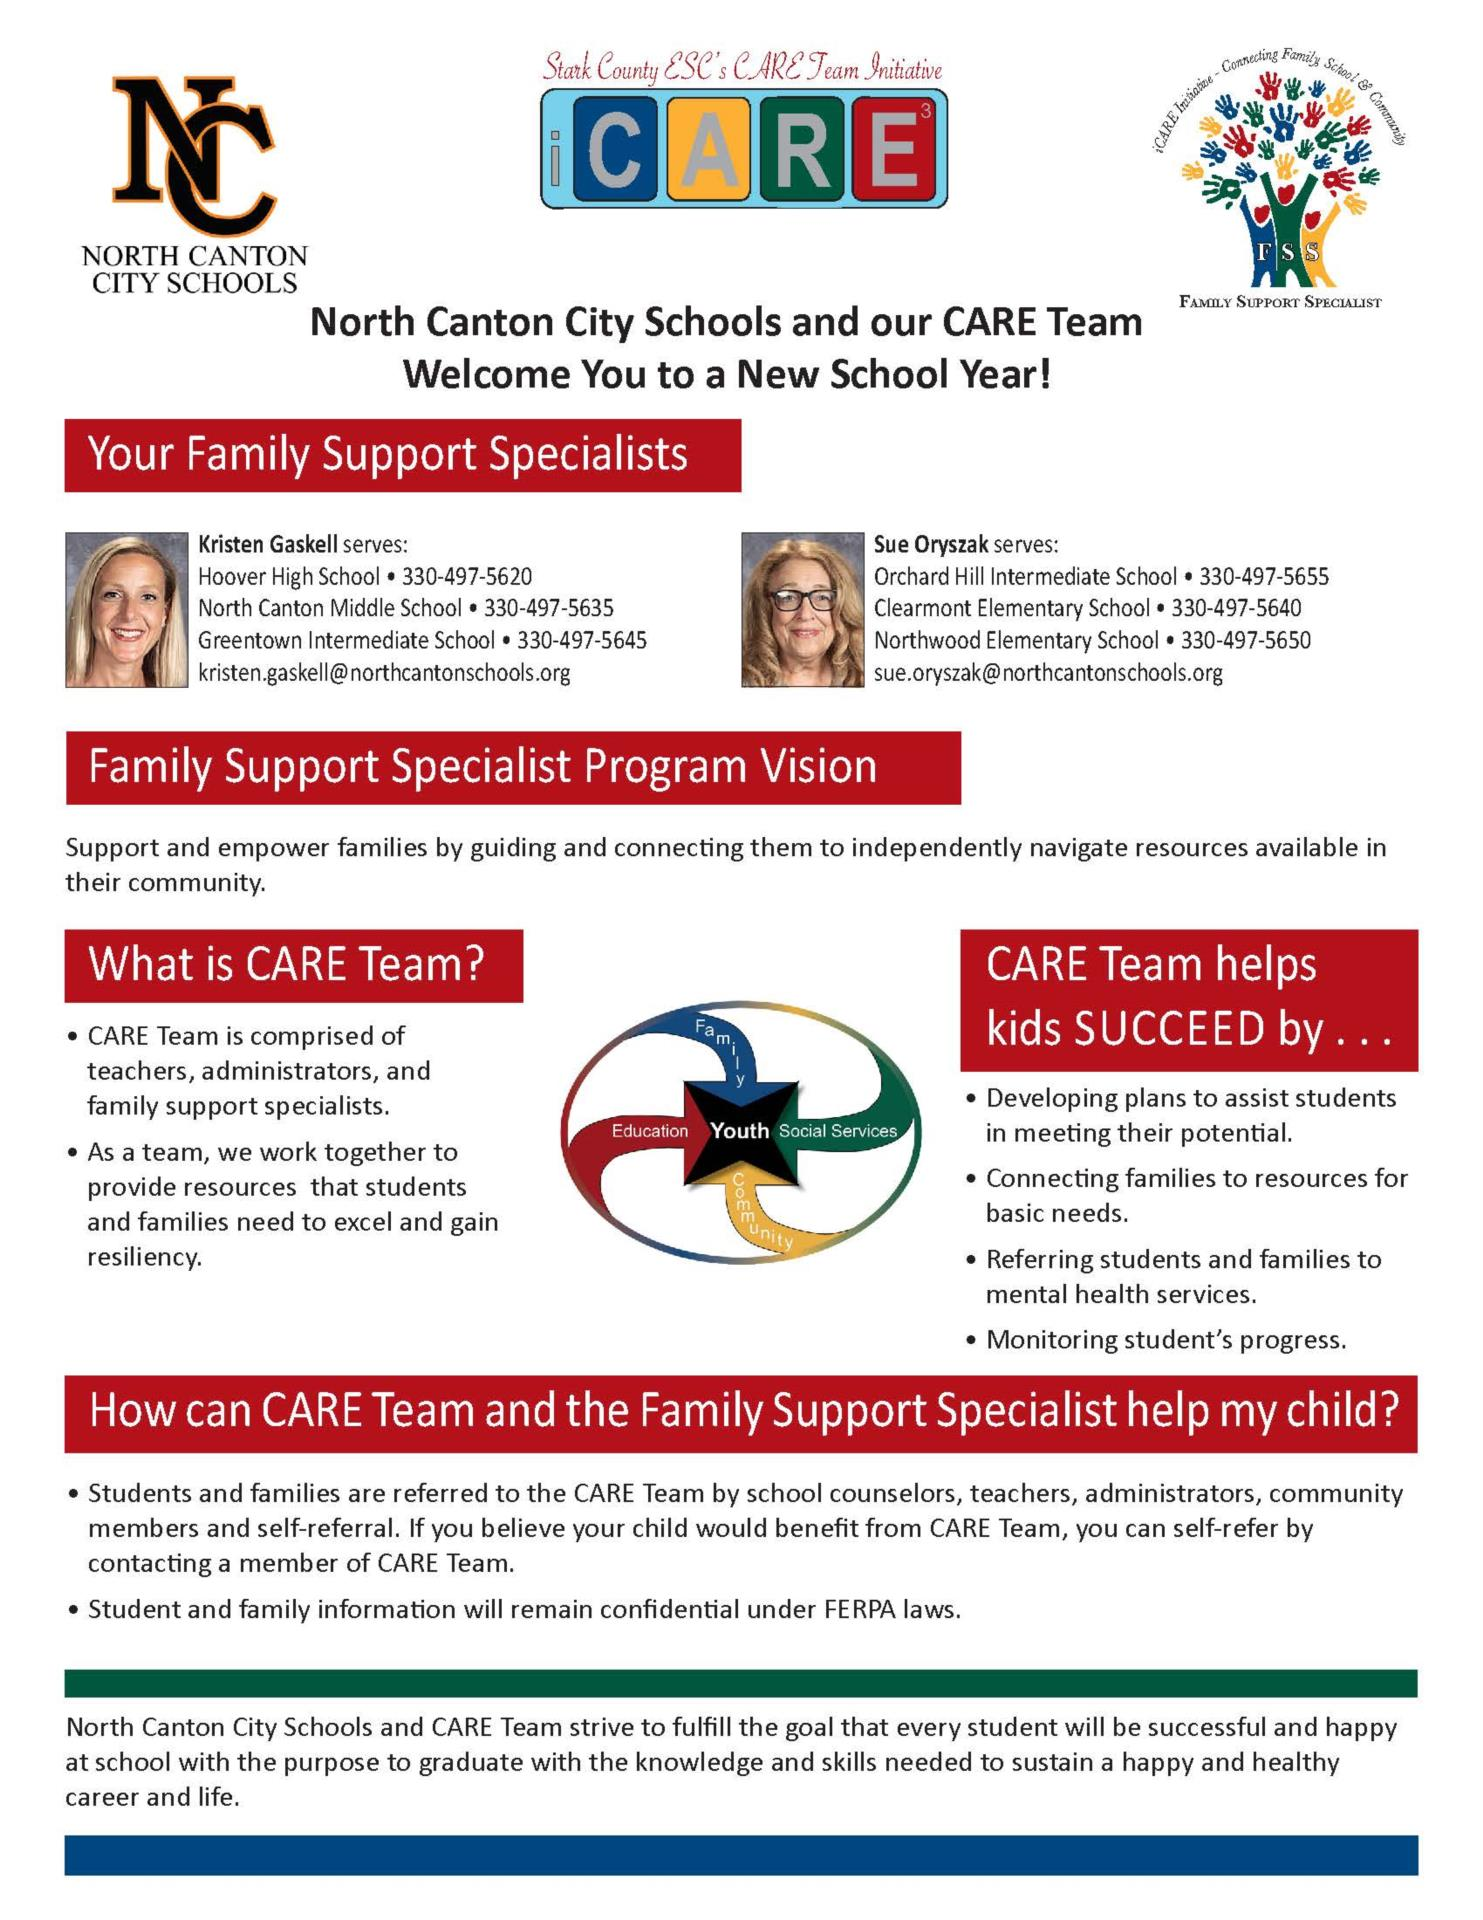 description and photos of family support specialists